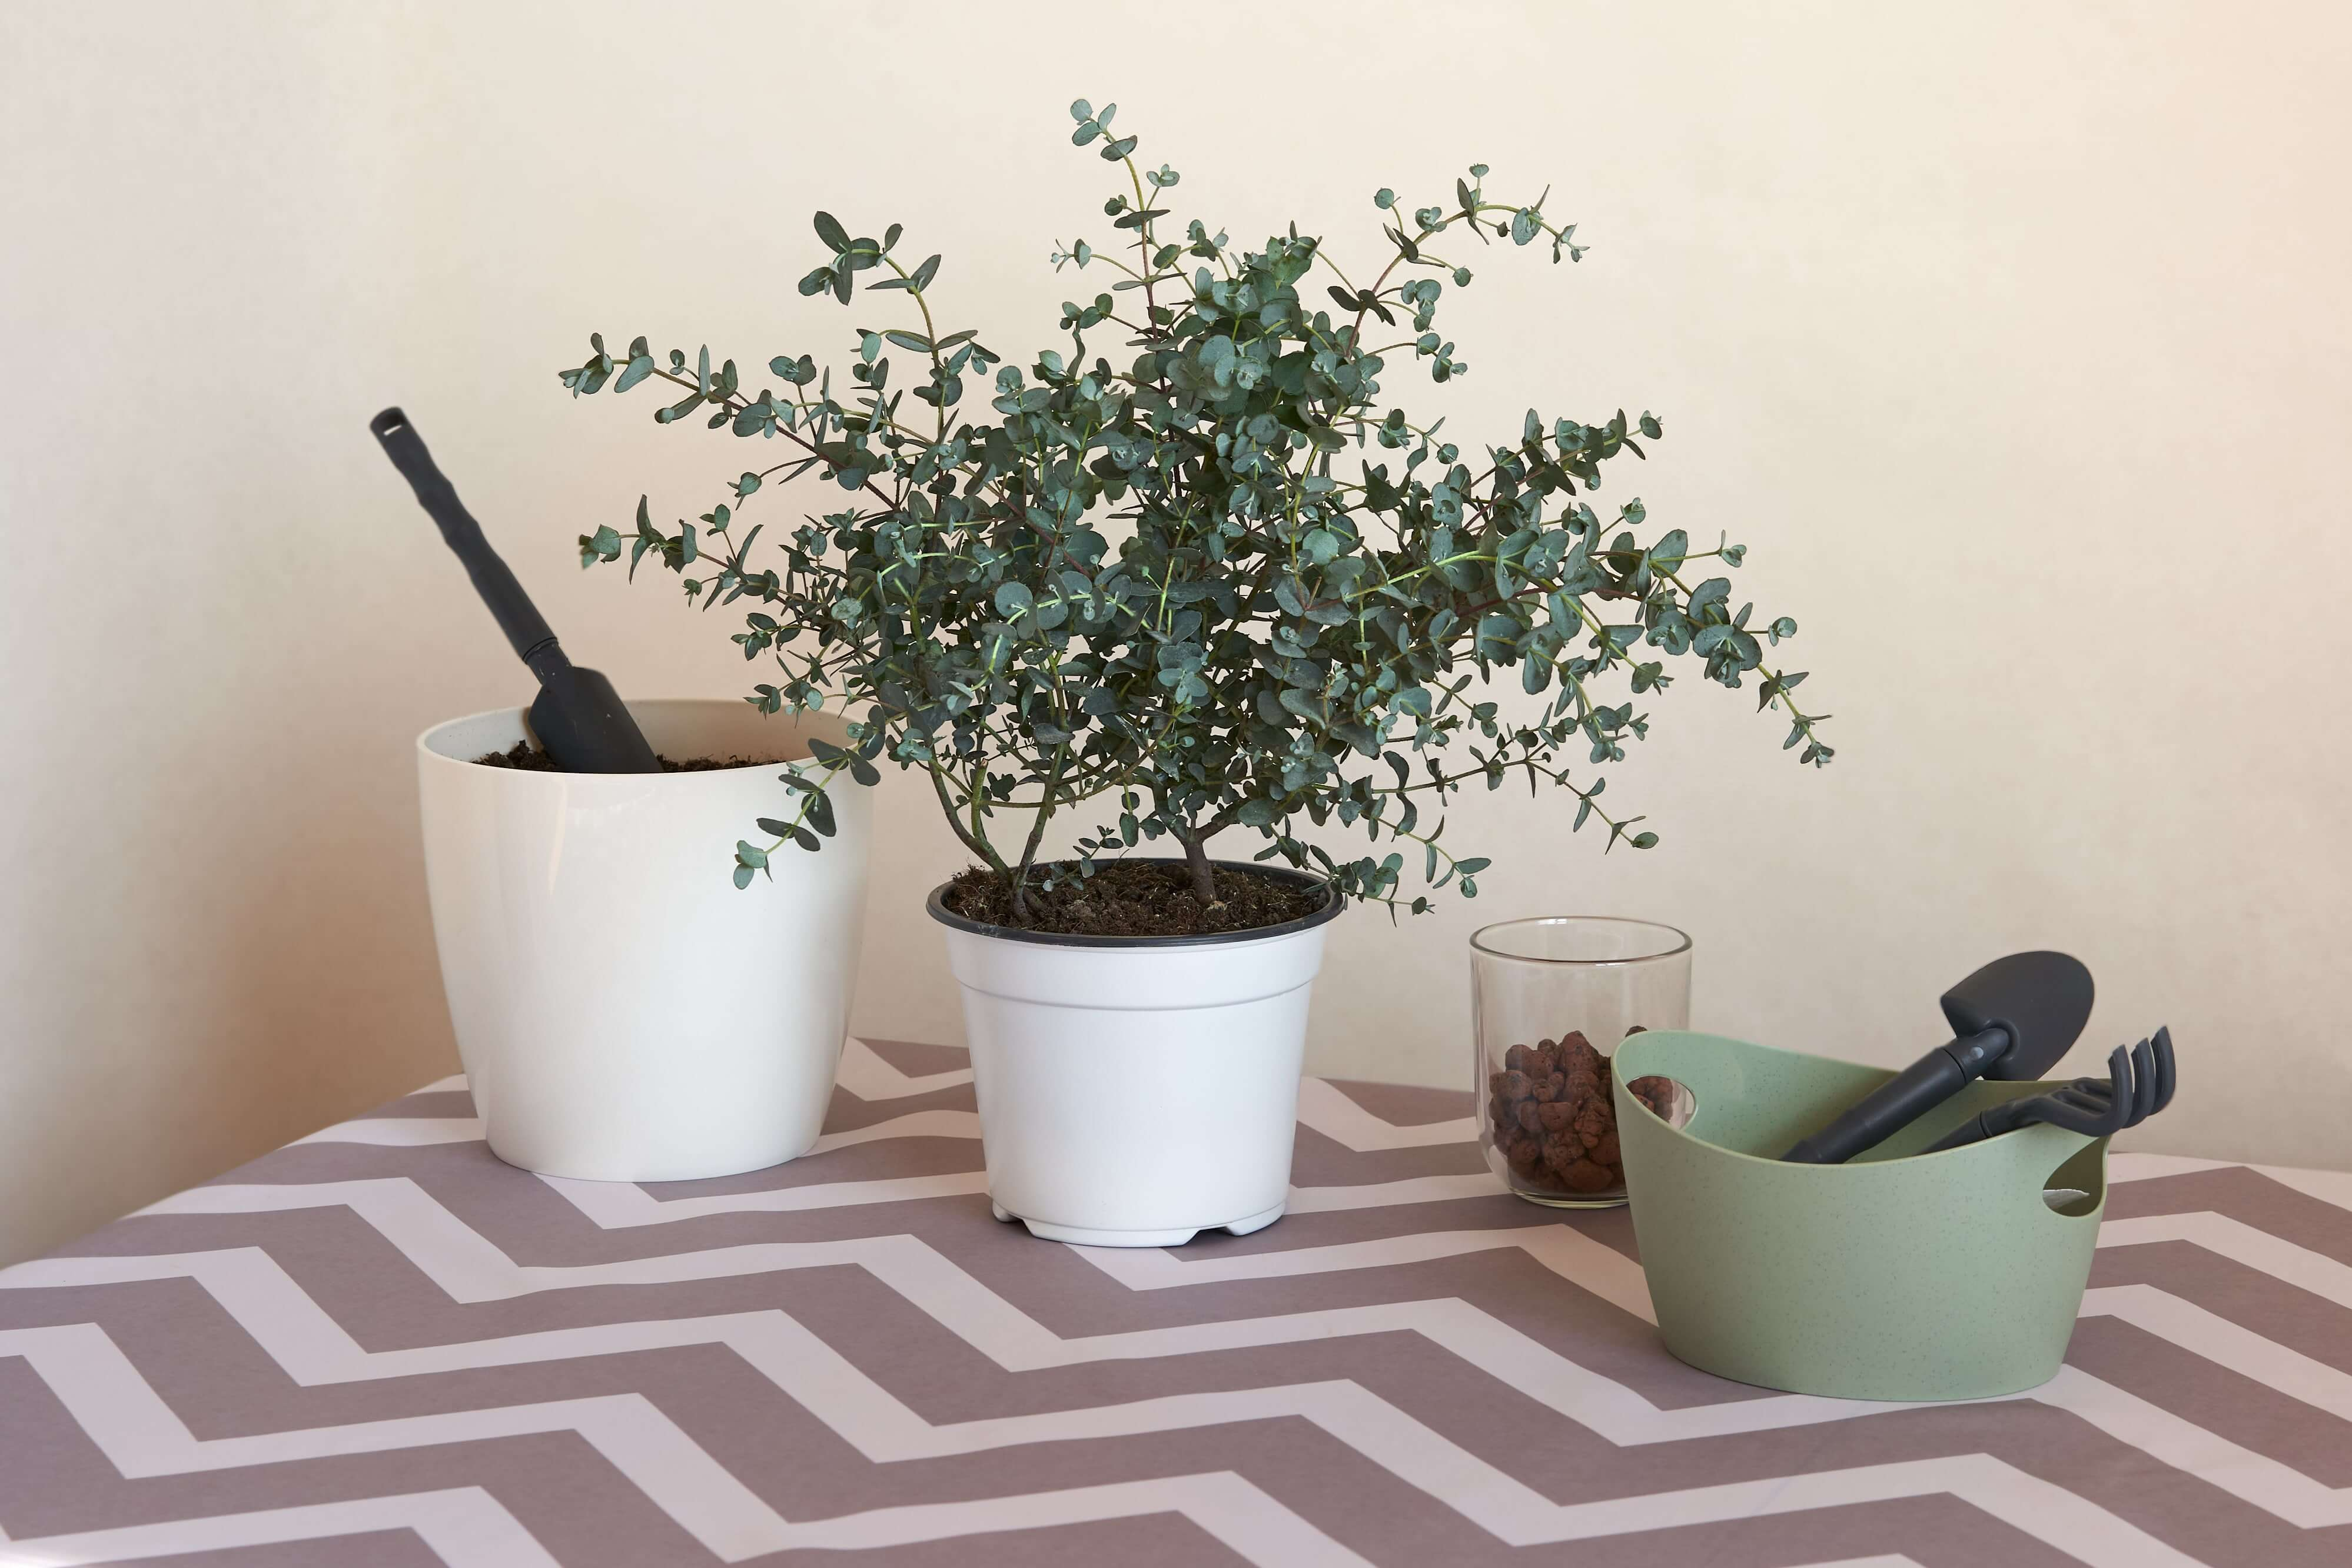 What you need to repot